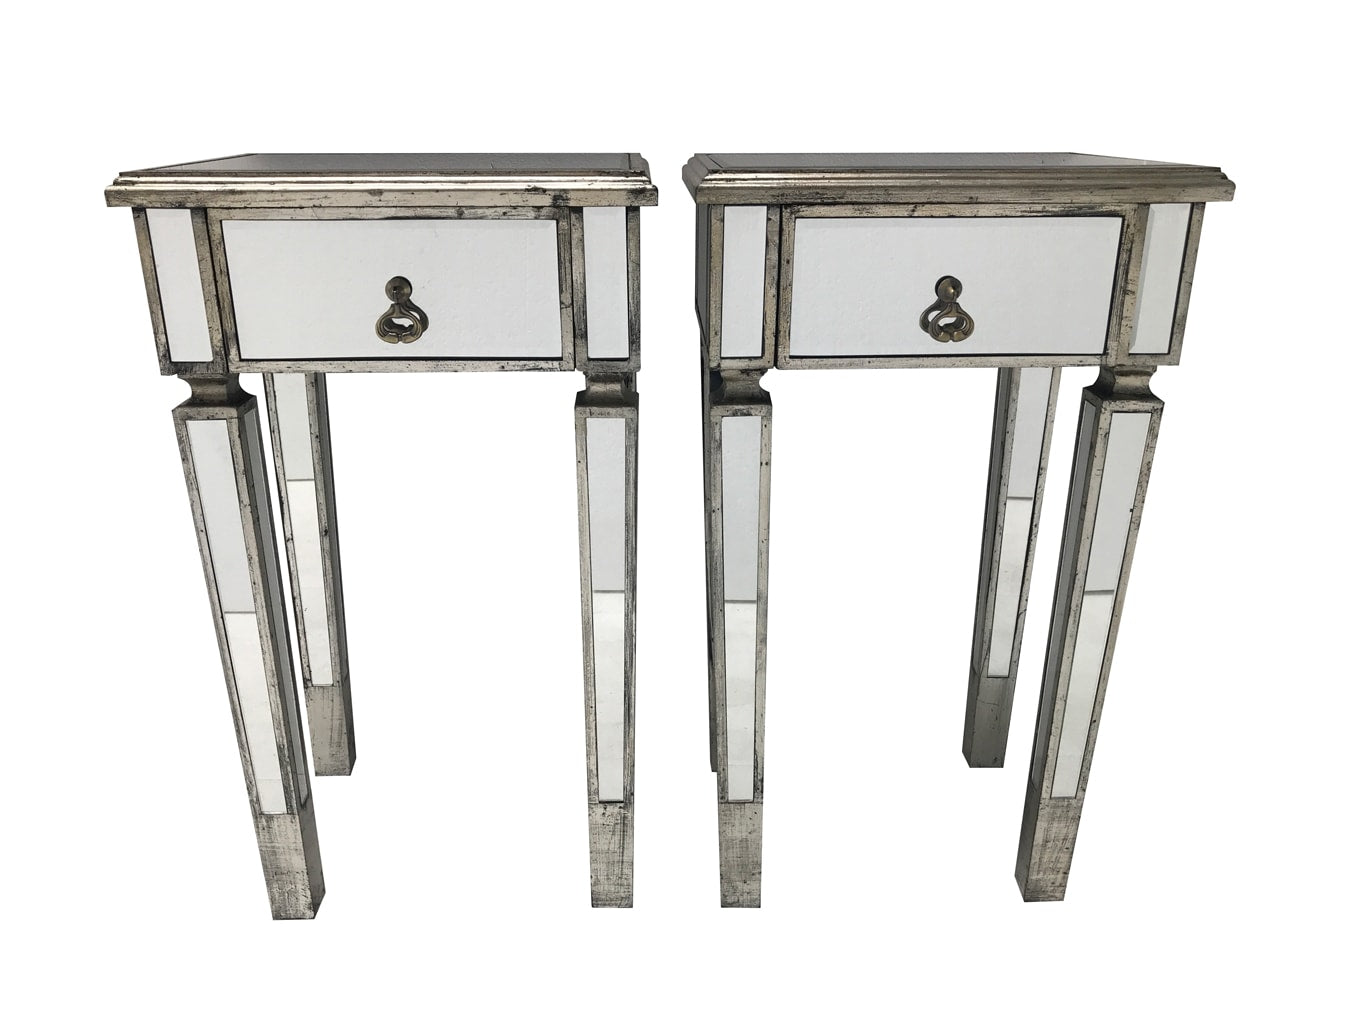 Pair of Mirrored Side Tables with wooden edging and antiqued slim silver finish from our stunning luxury Charleston collection. Brass drop handles, one drawer, wood and mirror, antique silver finish